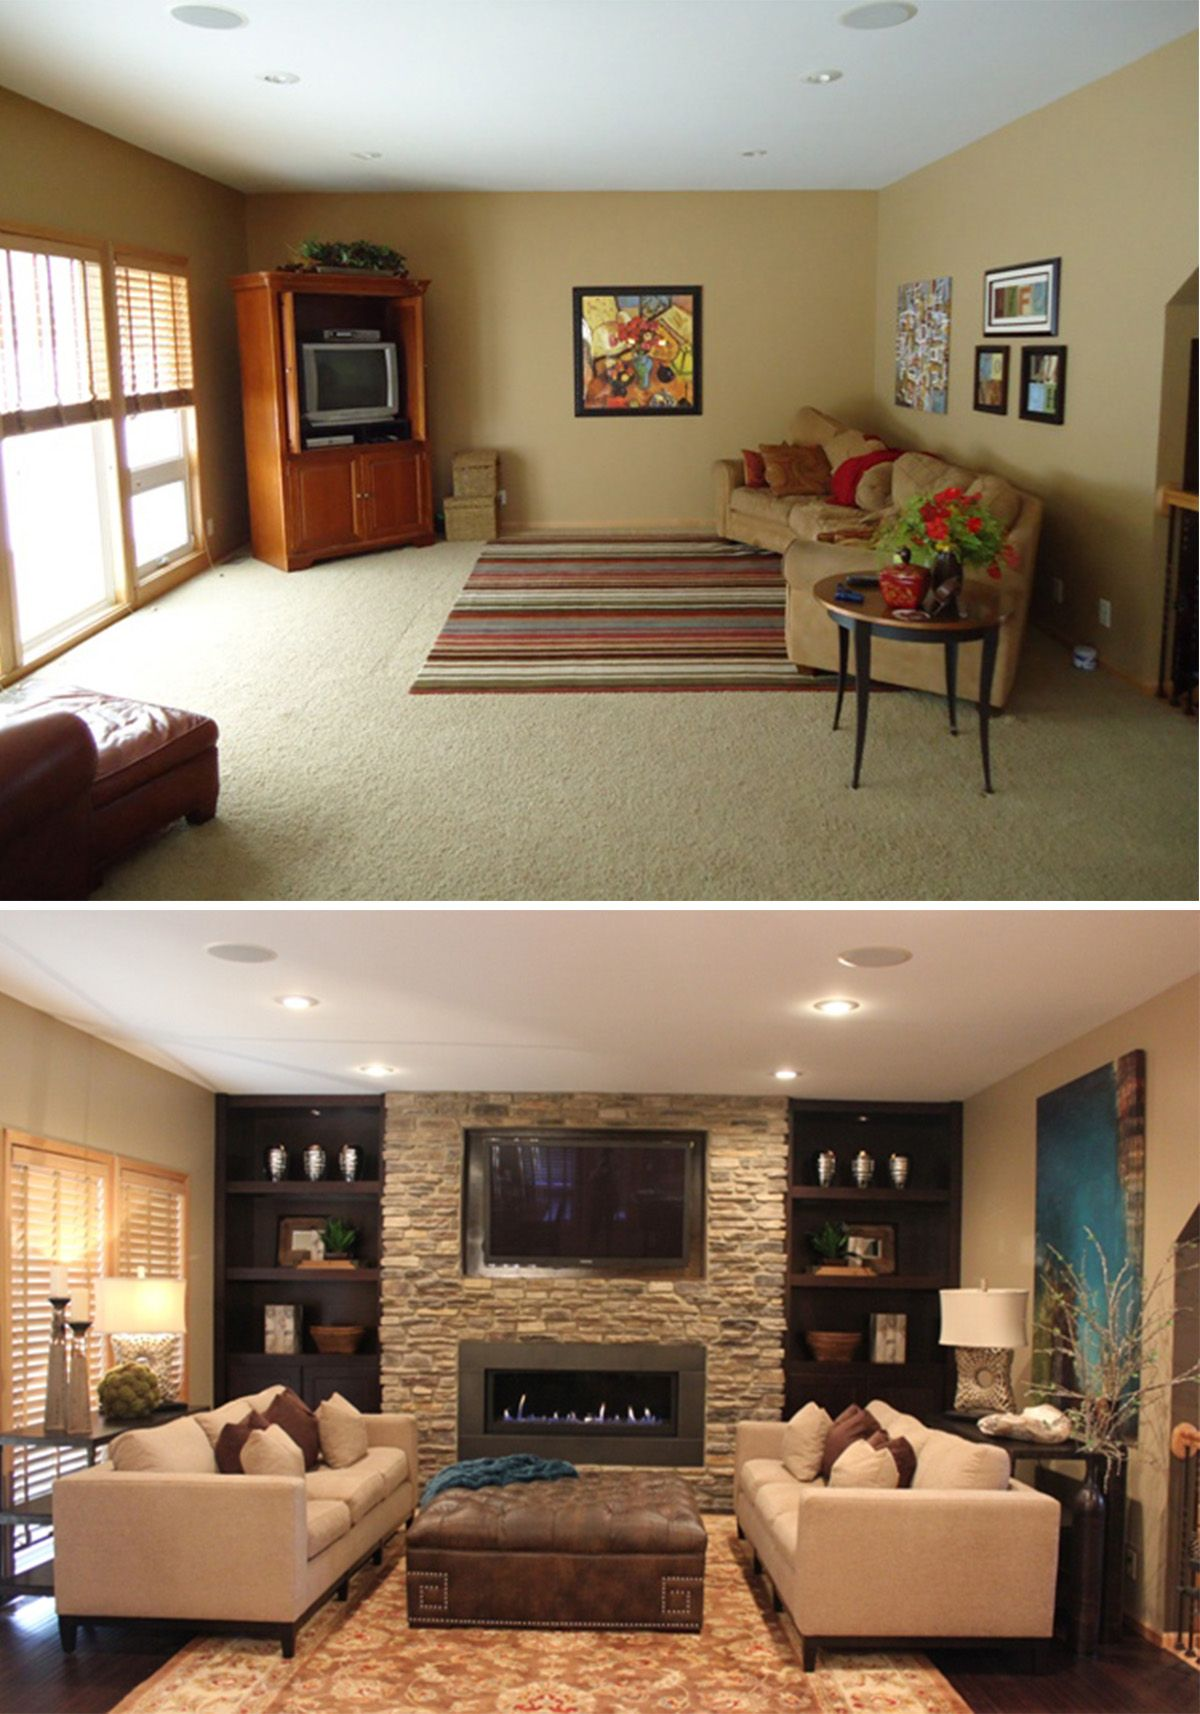 Great Home Design Ideas: Interior Design Before And After Michele Hybner Omaha